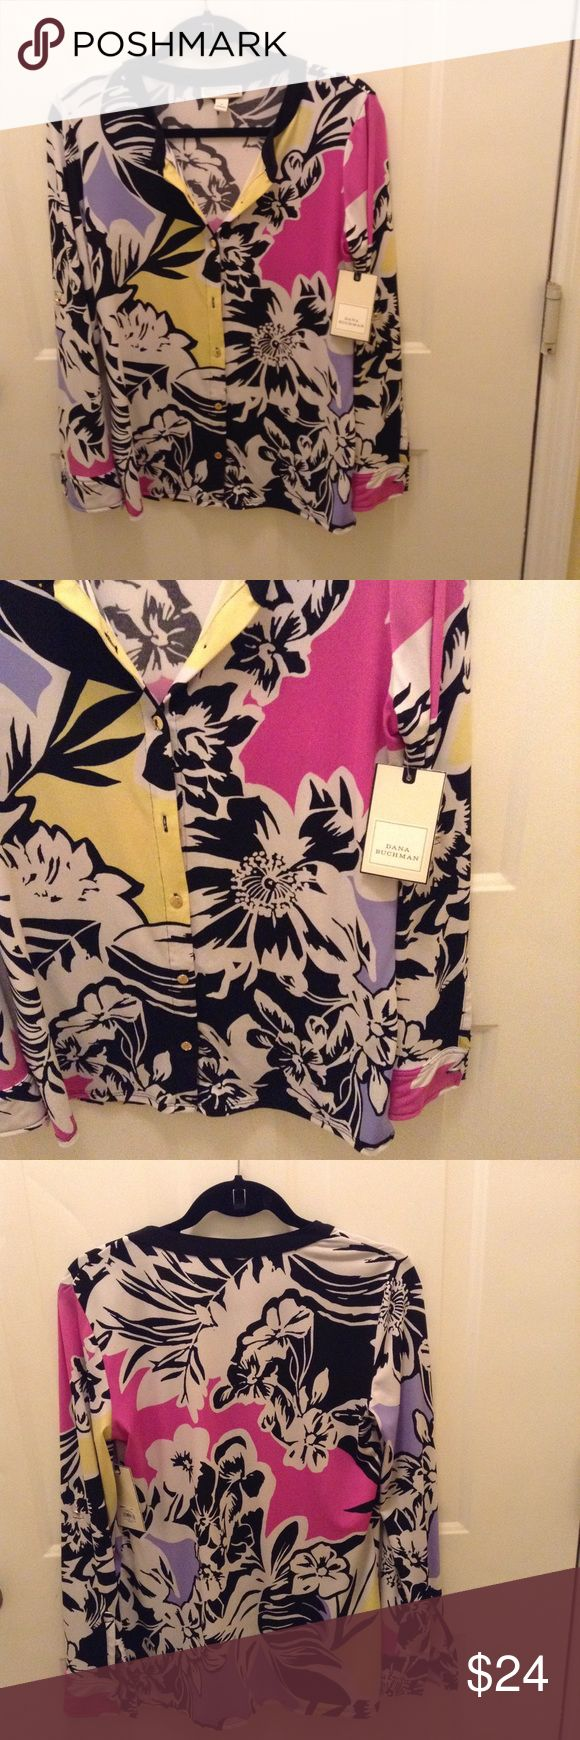 Knit Button Front Blouse This beautiful top has a floral pattern with bold colors of pink, yellow, lavender, black, & white!!  It has roll up sleeves with a closure gold button and small bottom slide slits. It's 25 inches long and 95% Polyester & 5% Spandex. Dana Buchman Tops Blouses